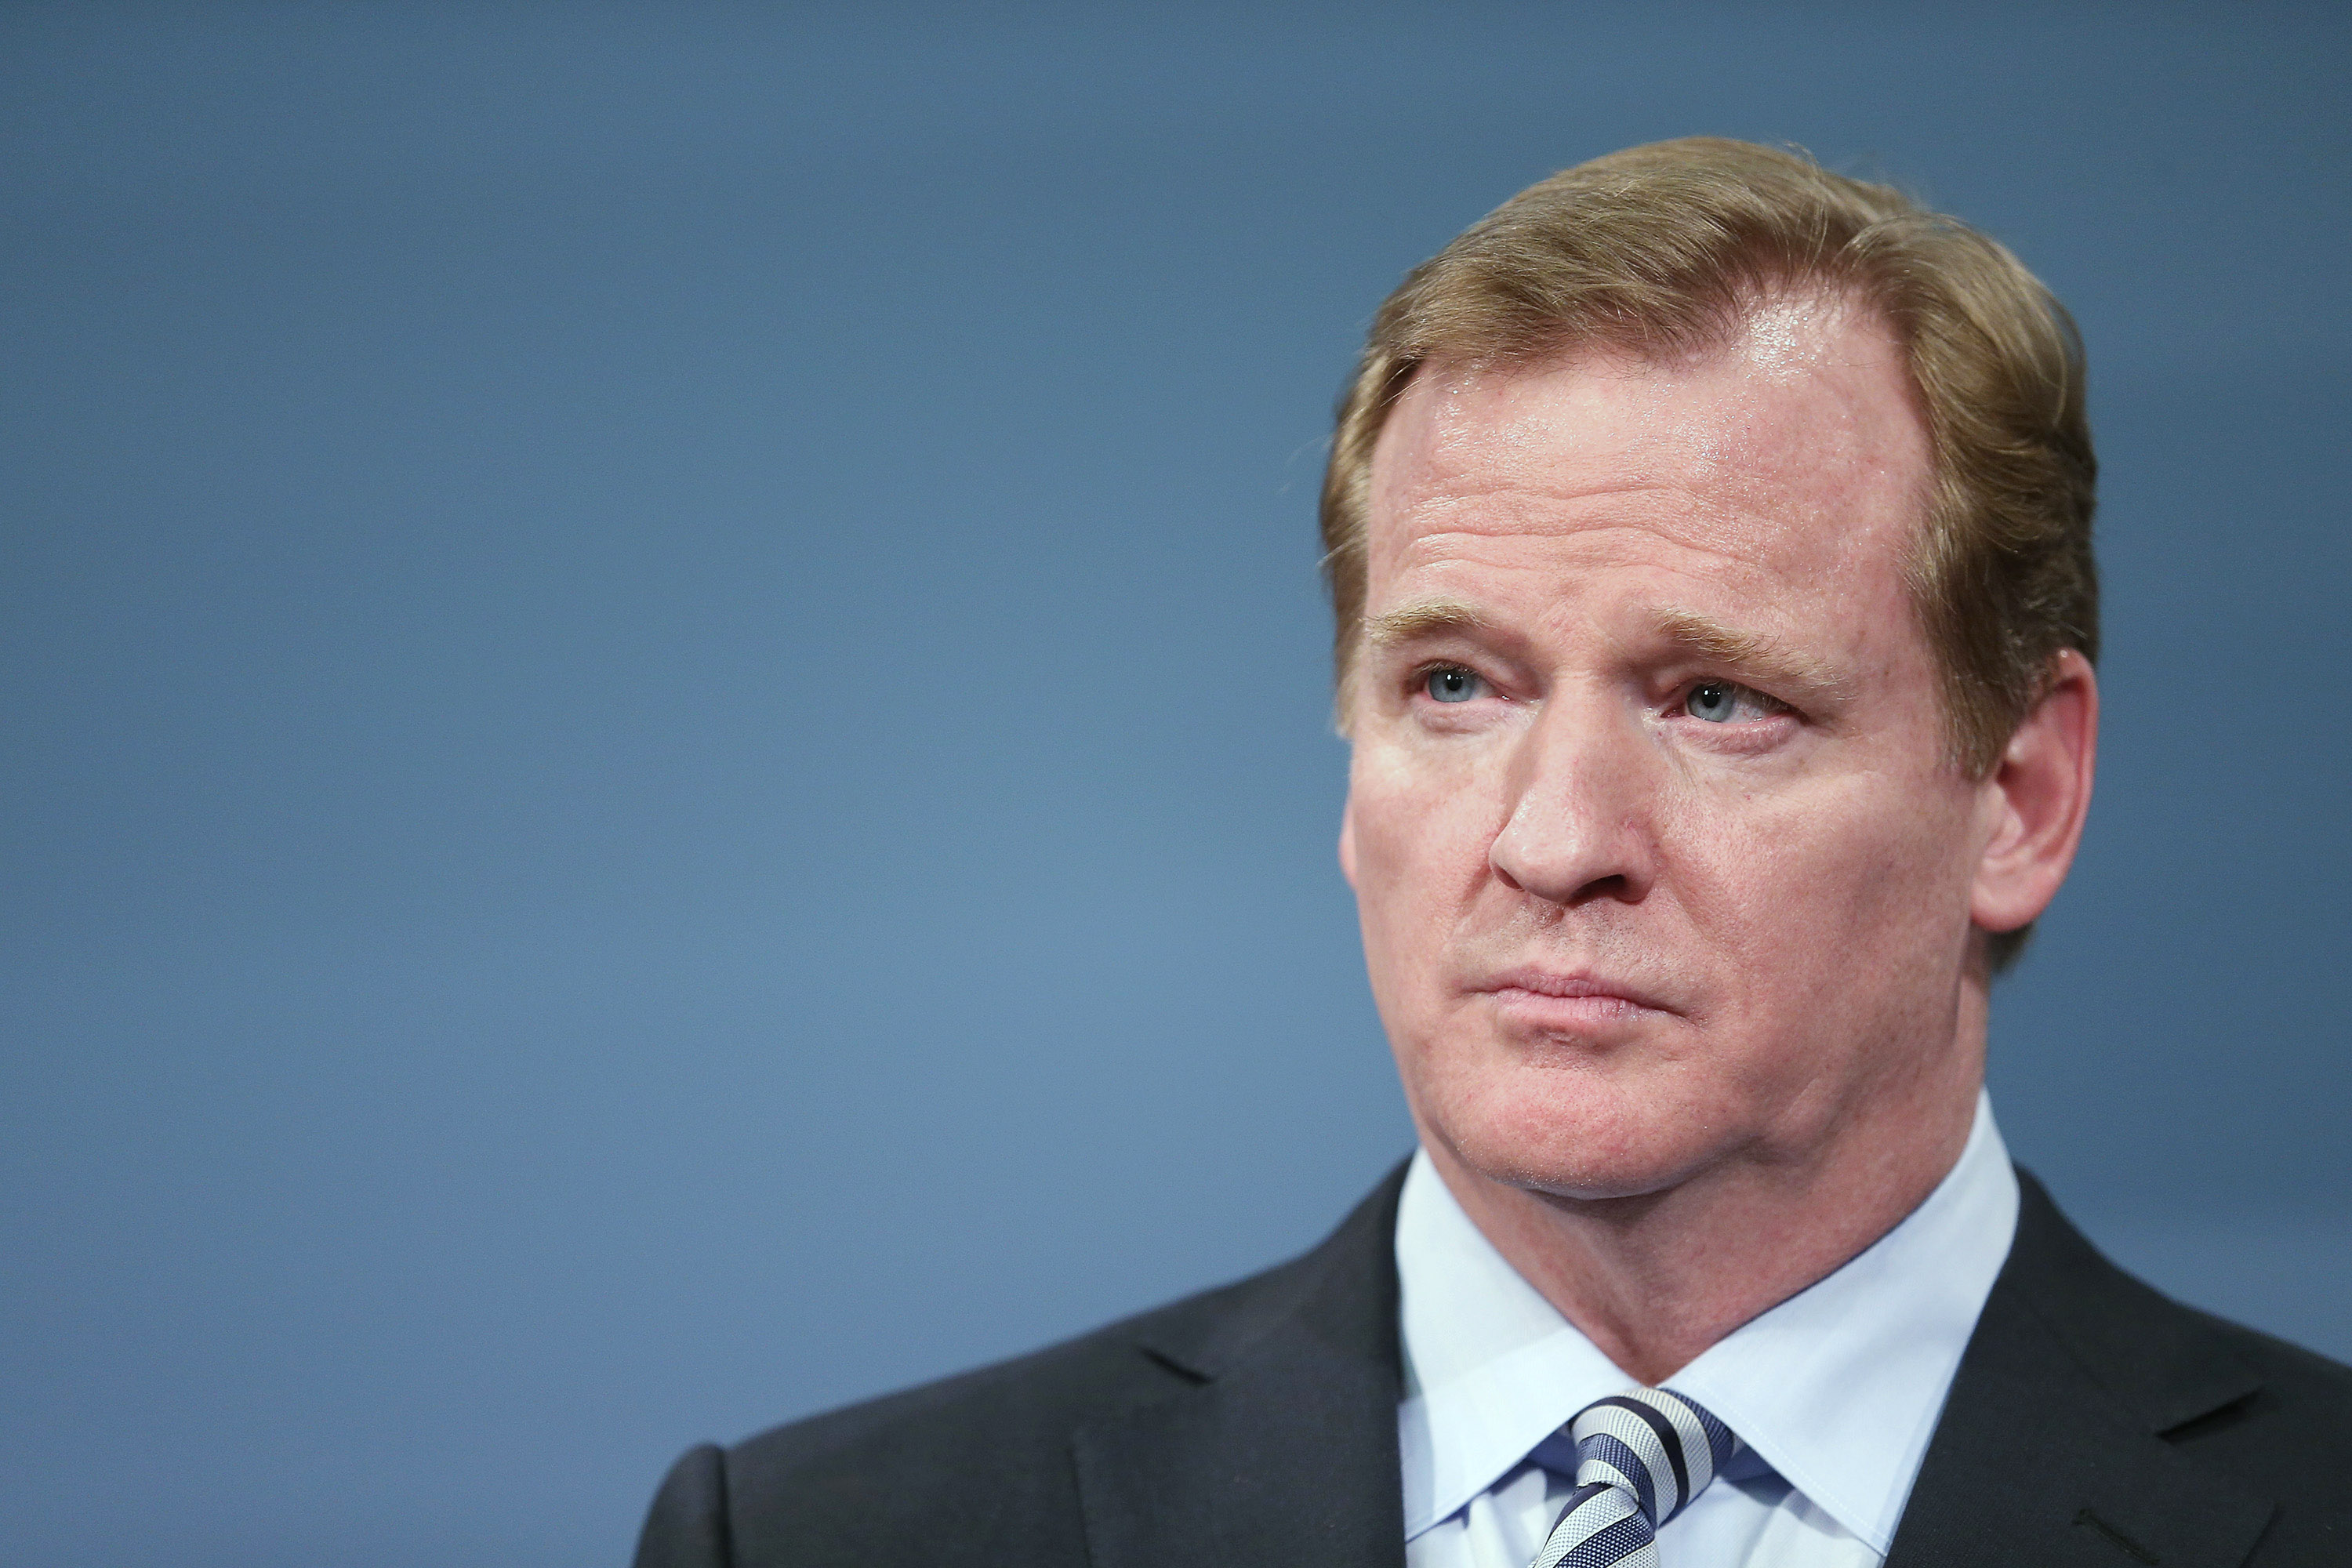 NFL Commissioner Goodell Discuss 2014 Super Bowl Plans